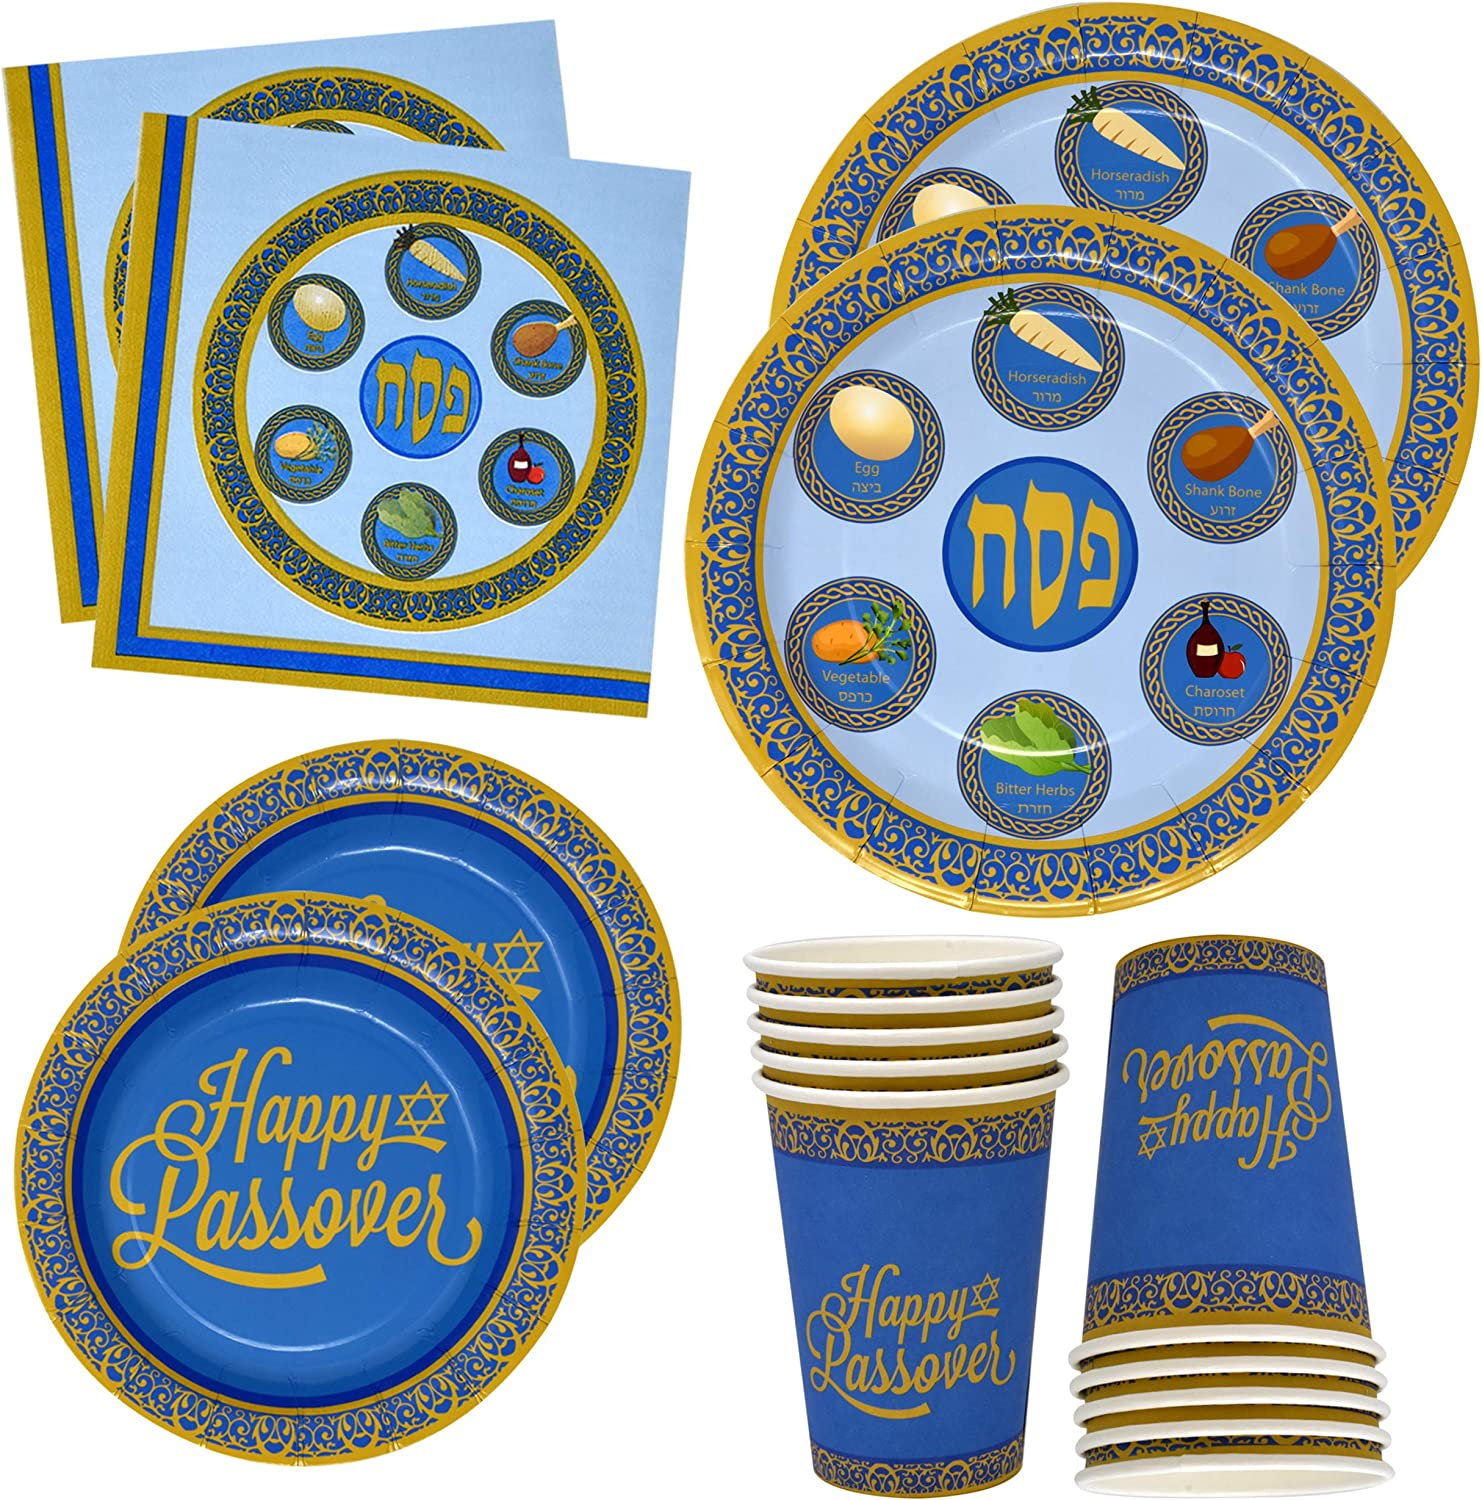 Gift Boutique Disposable Passover Paper Tableware Set